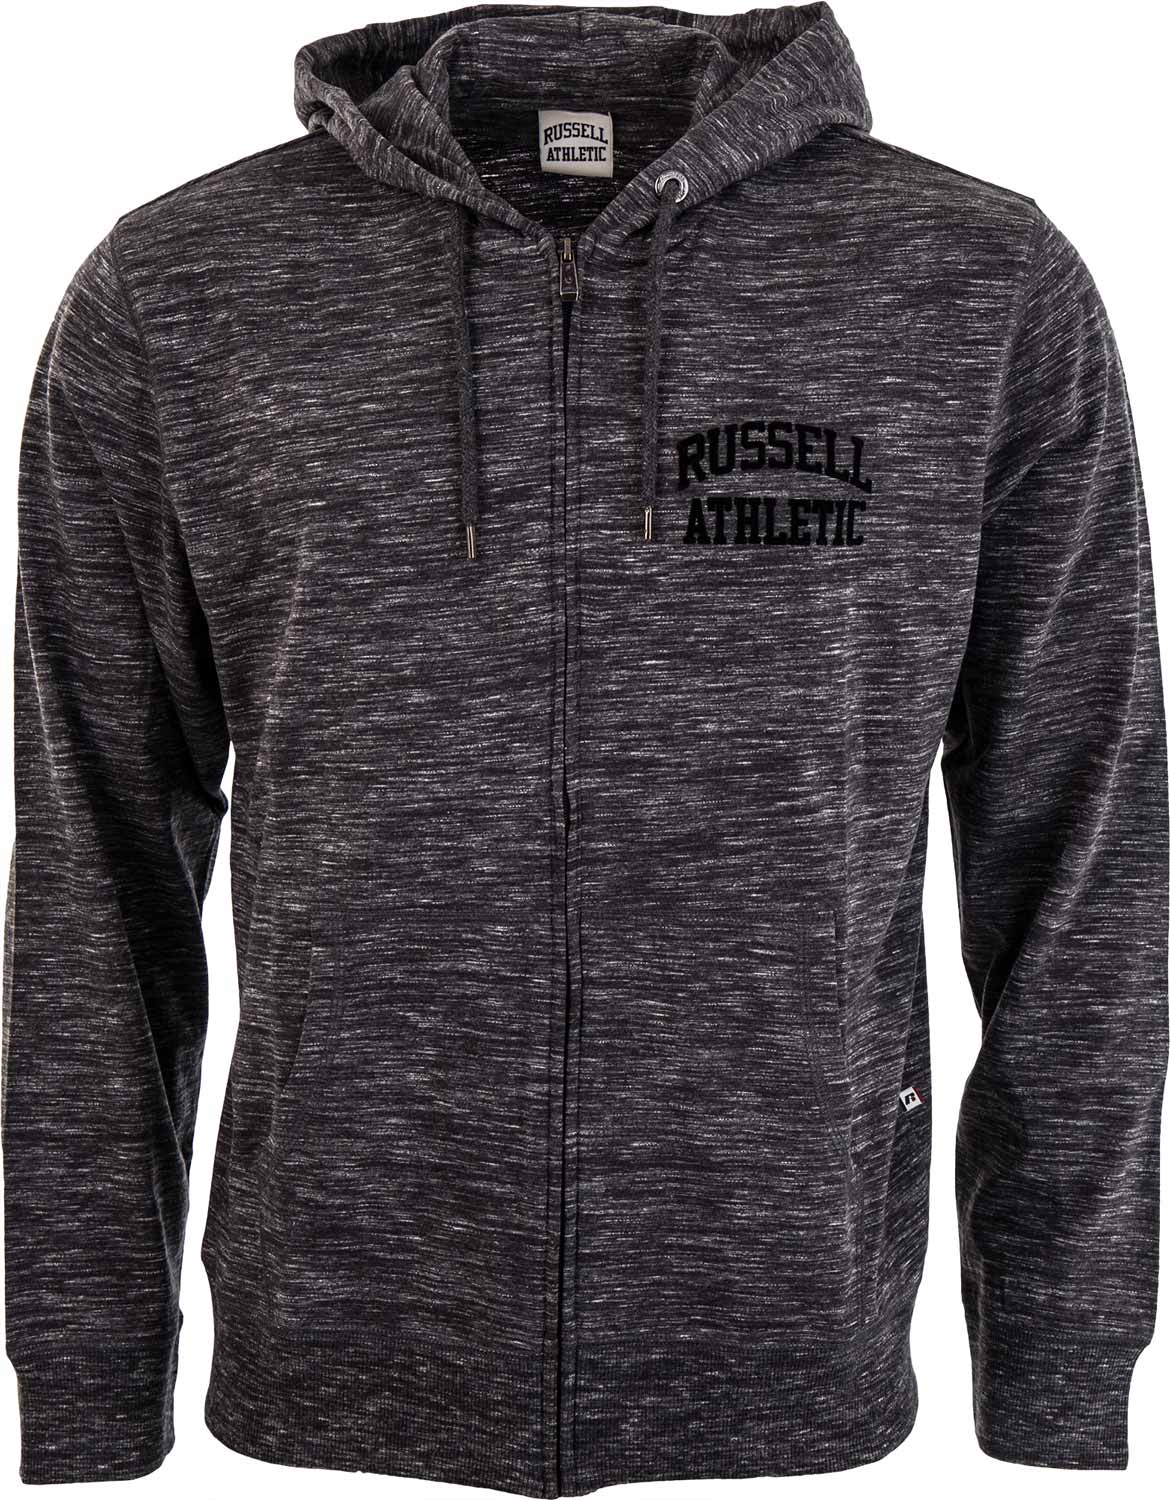 Russell Athletic ZIP TROUGH HOODY WITH ARCH LOGO | sportisimo cz